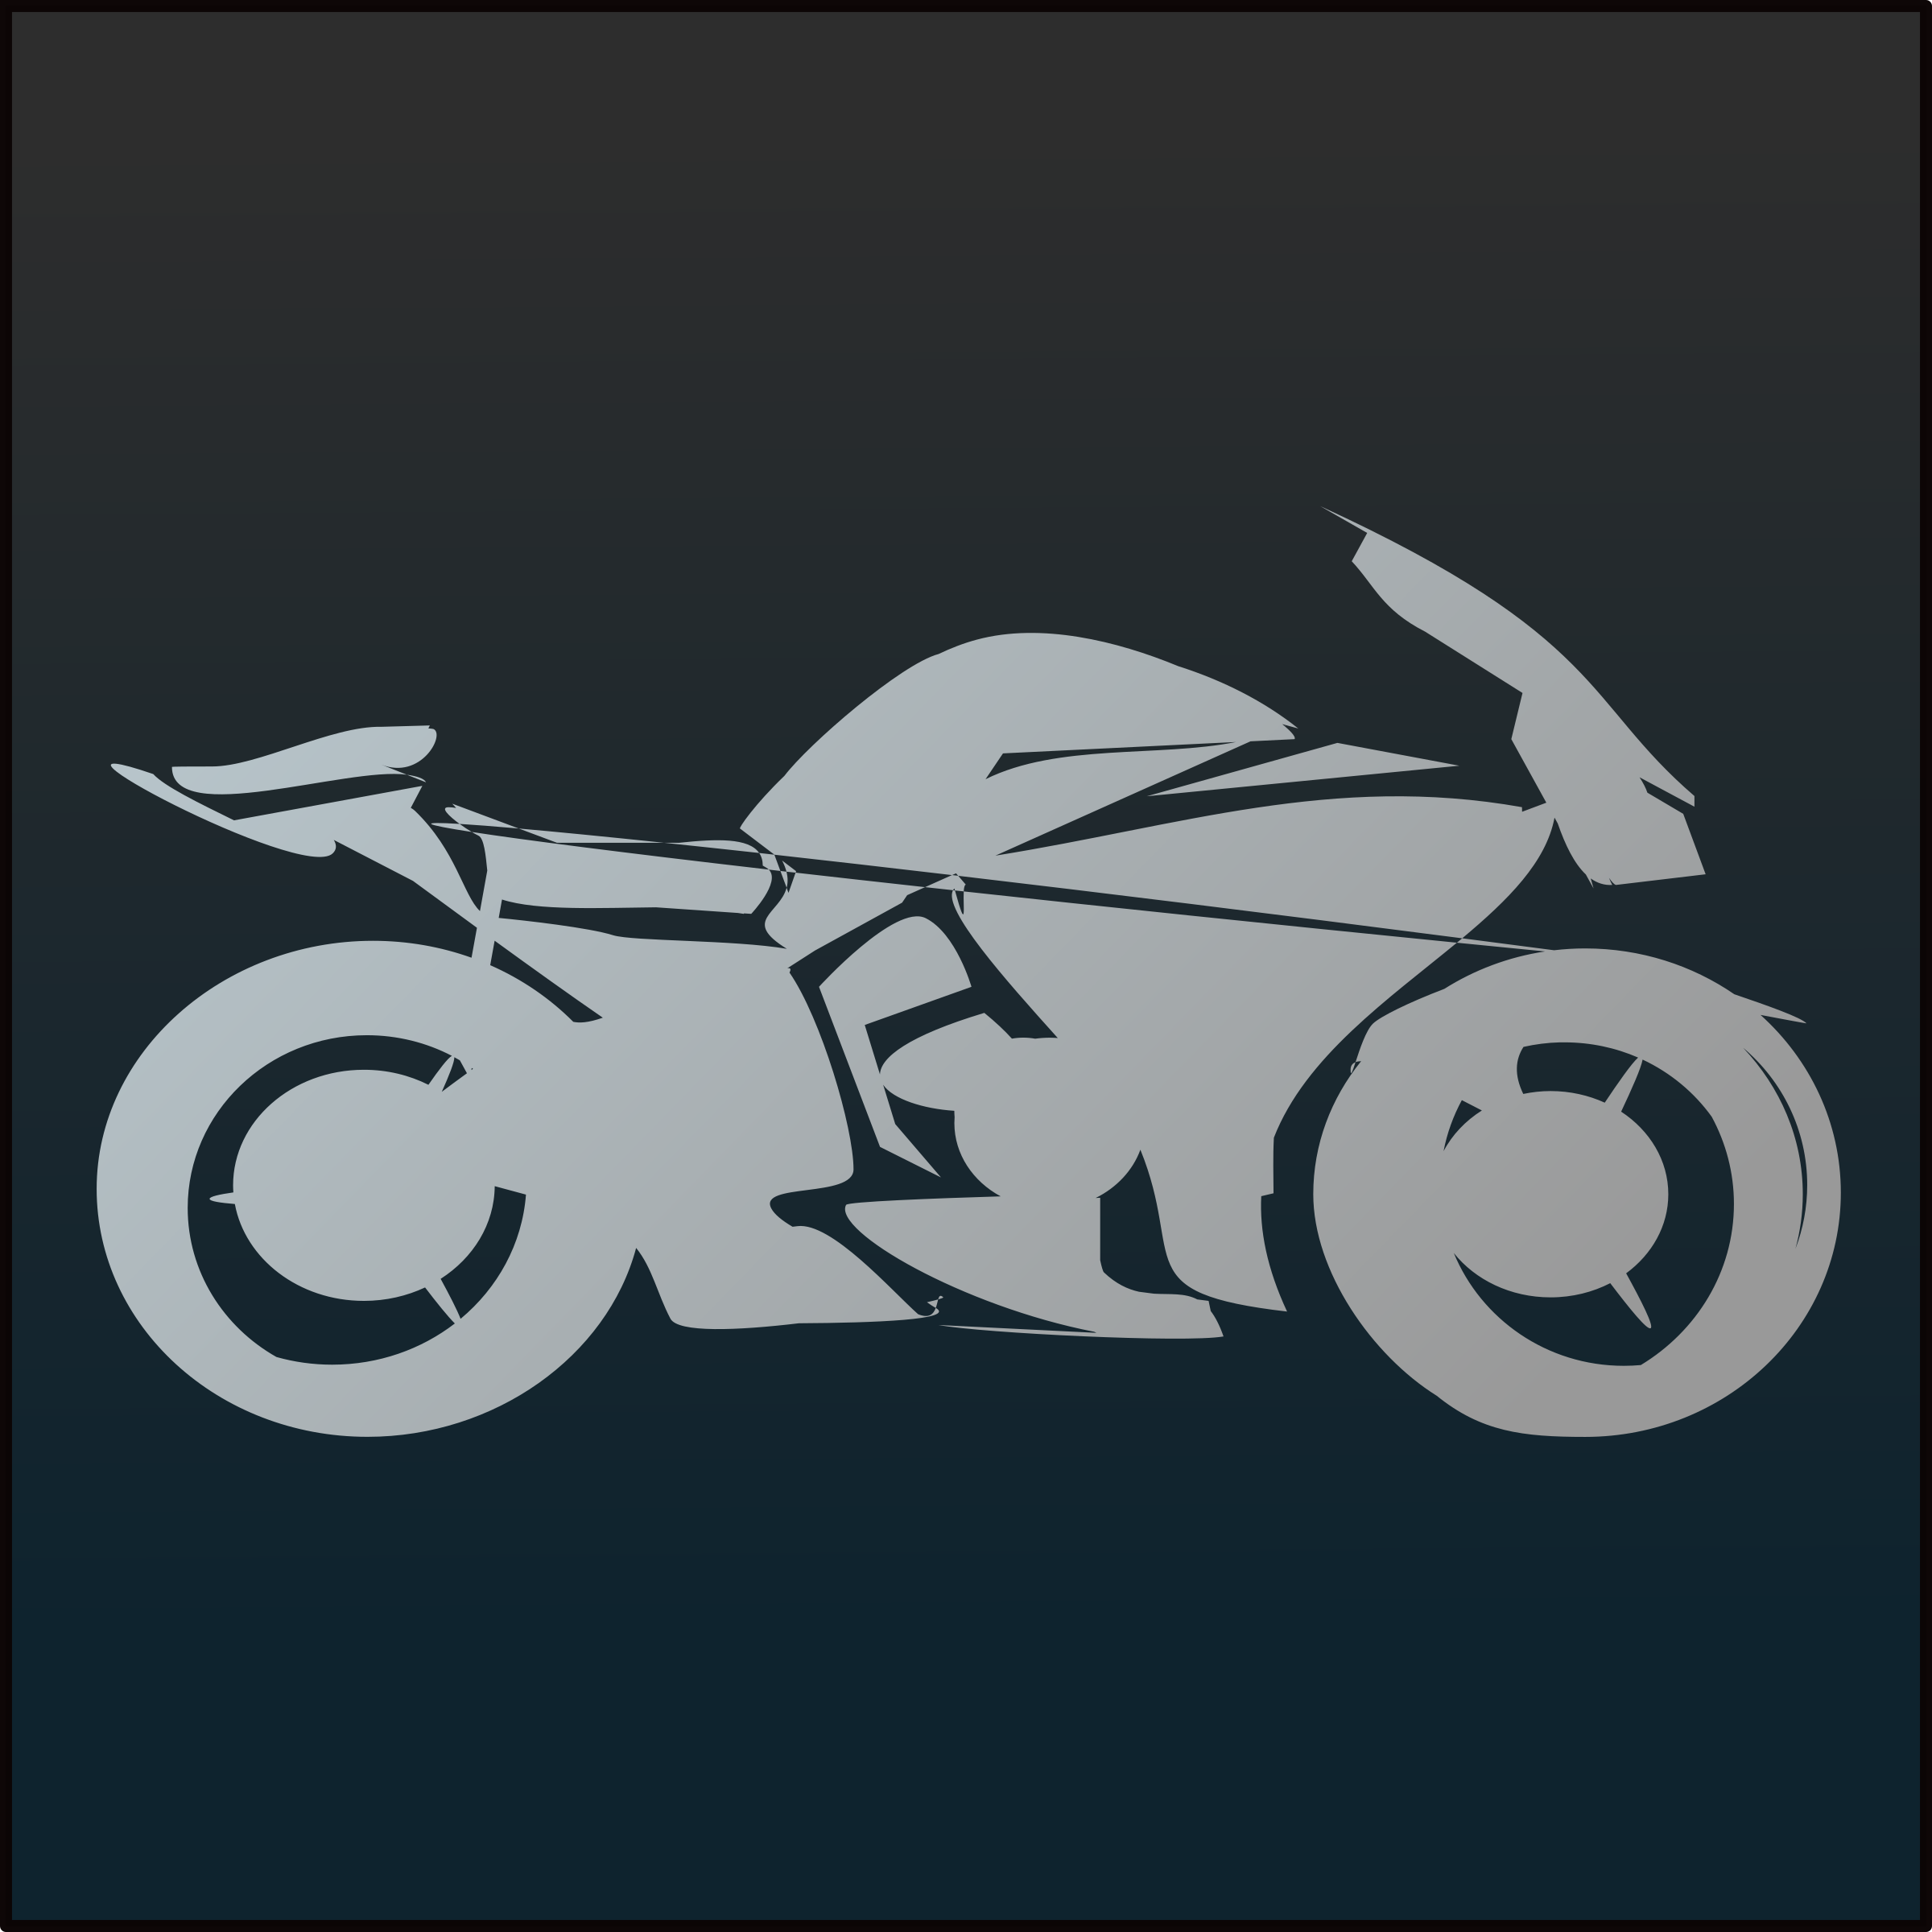 Bike Icon by netalloy